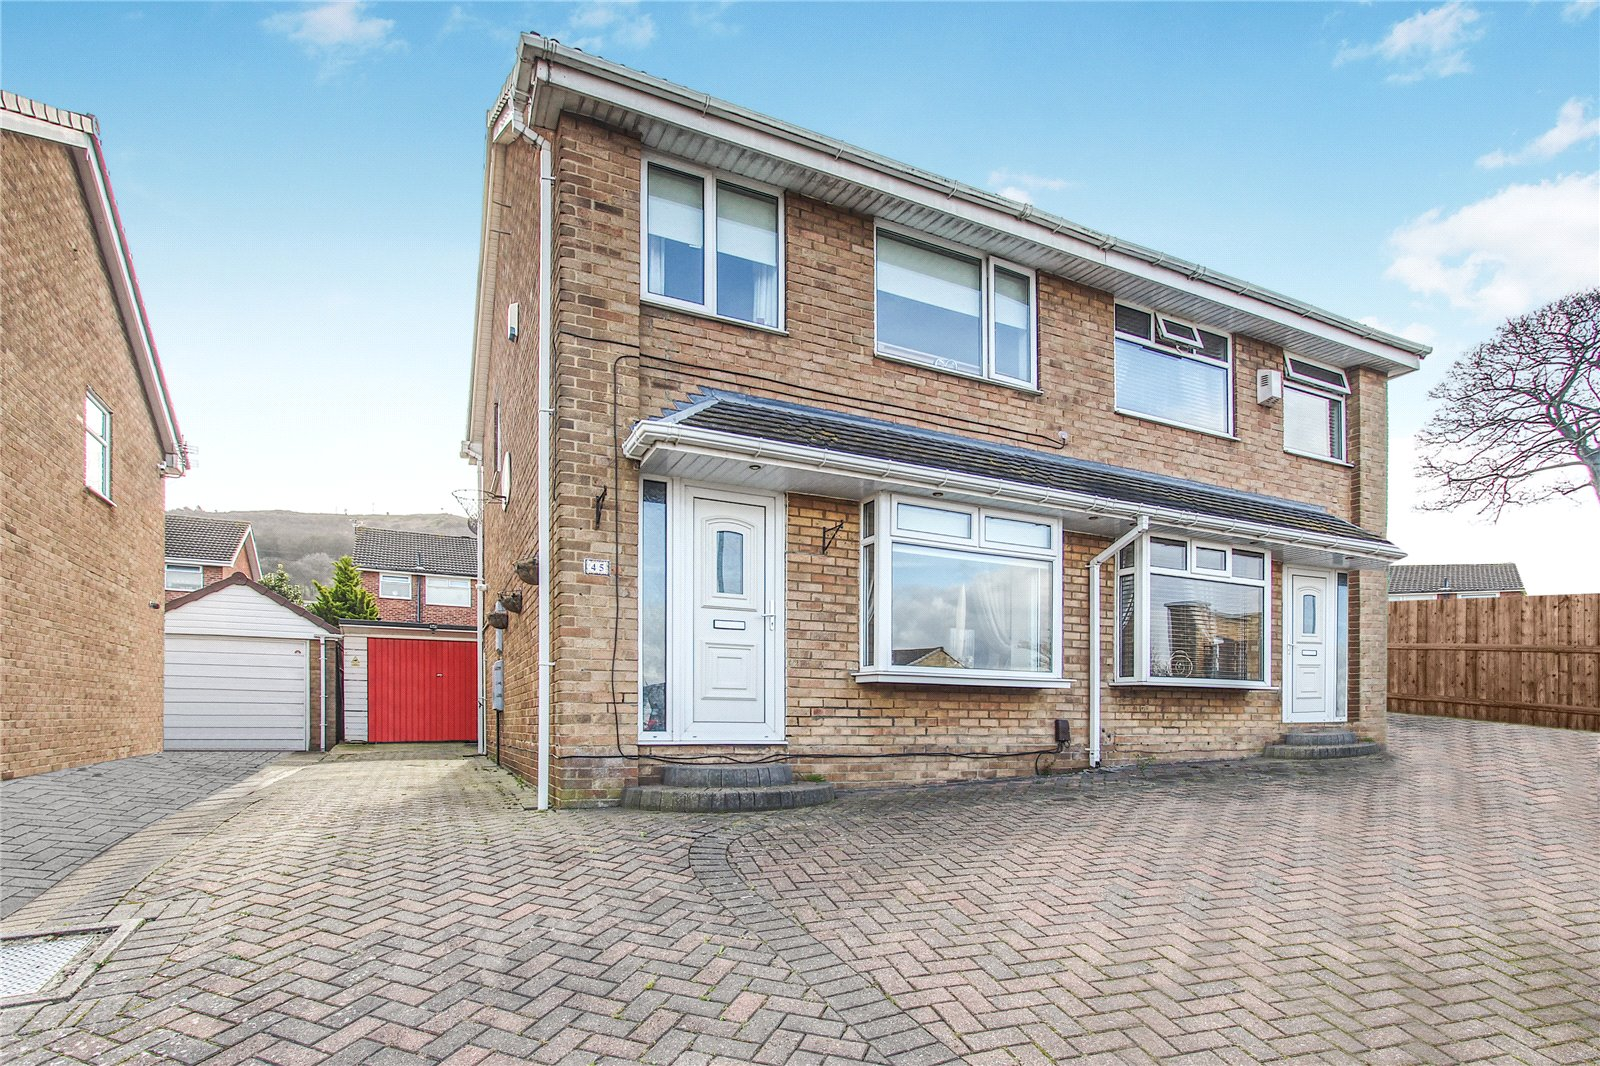 3 bed house for sale in Meadowgate, Eston  - Property Image 1